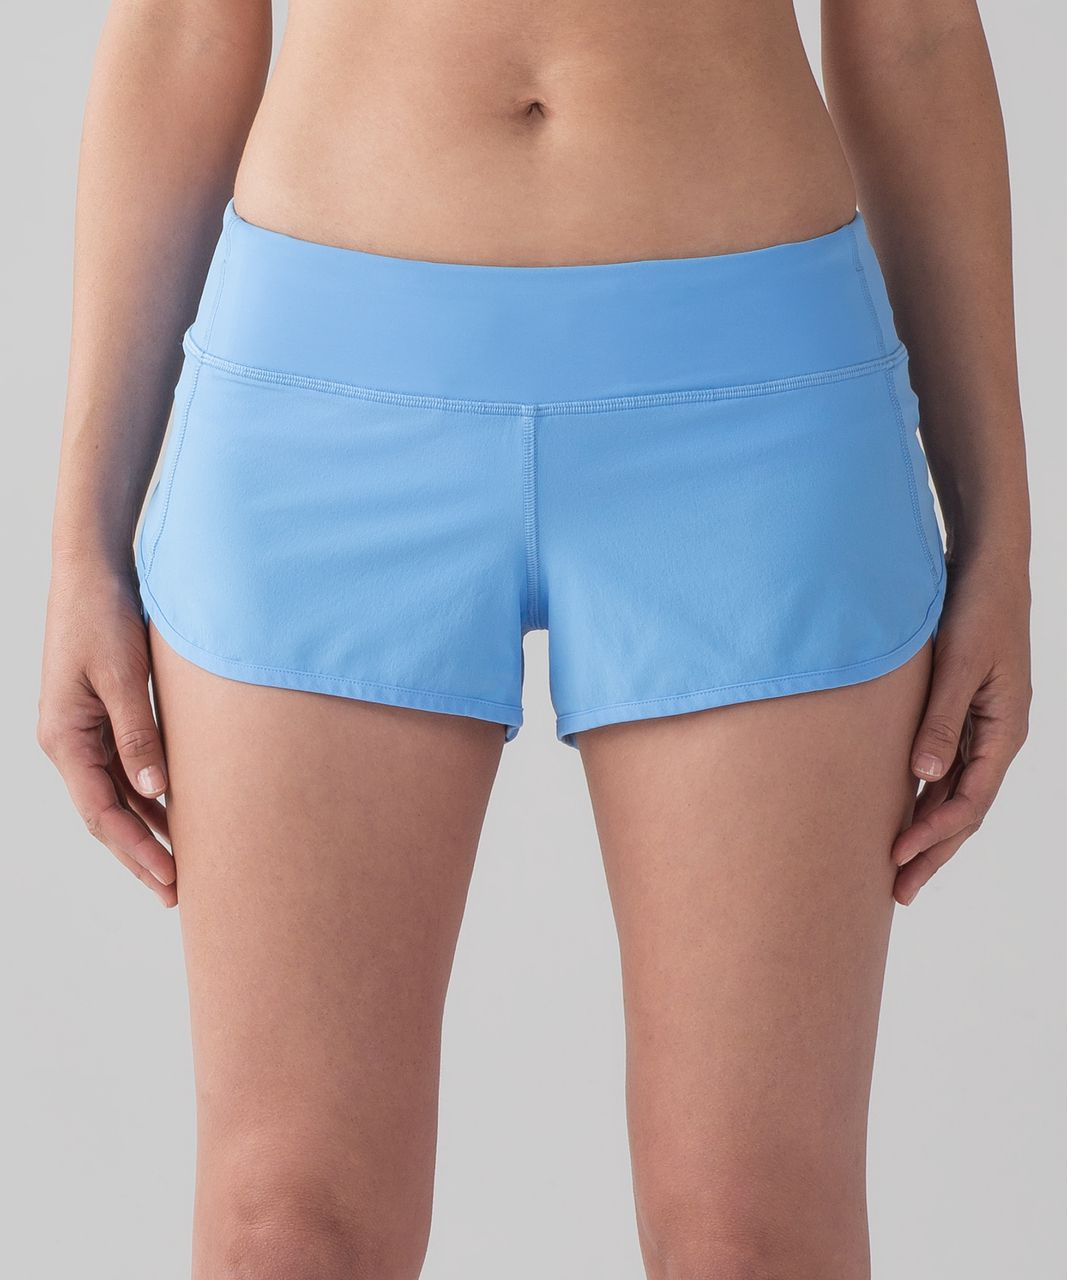 "Lululemon Speed Short (4-way Stretch 2.5"") - Aero Blue"